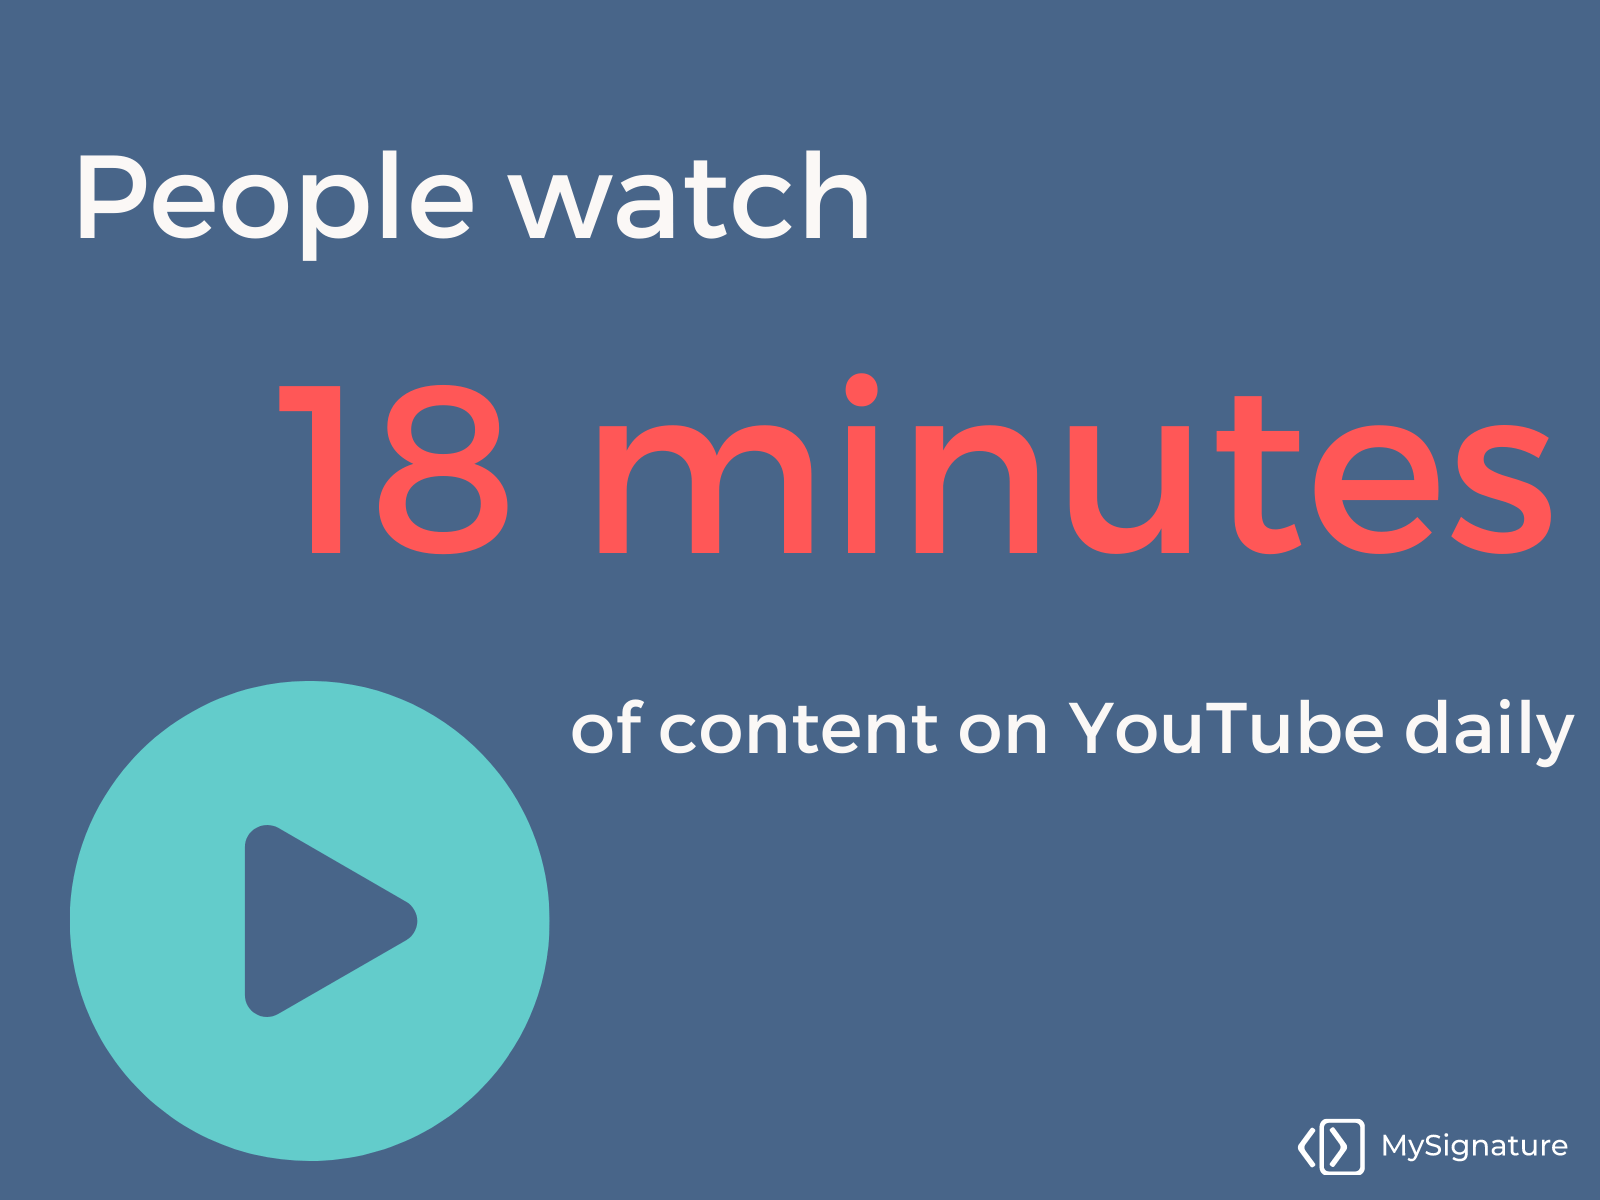 People watch videos for 18 minutes daily